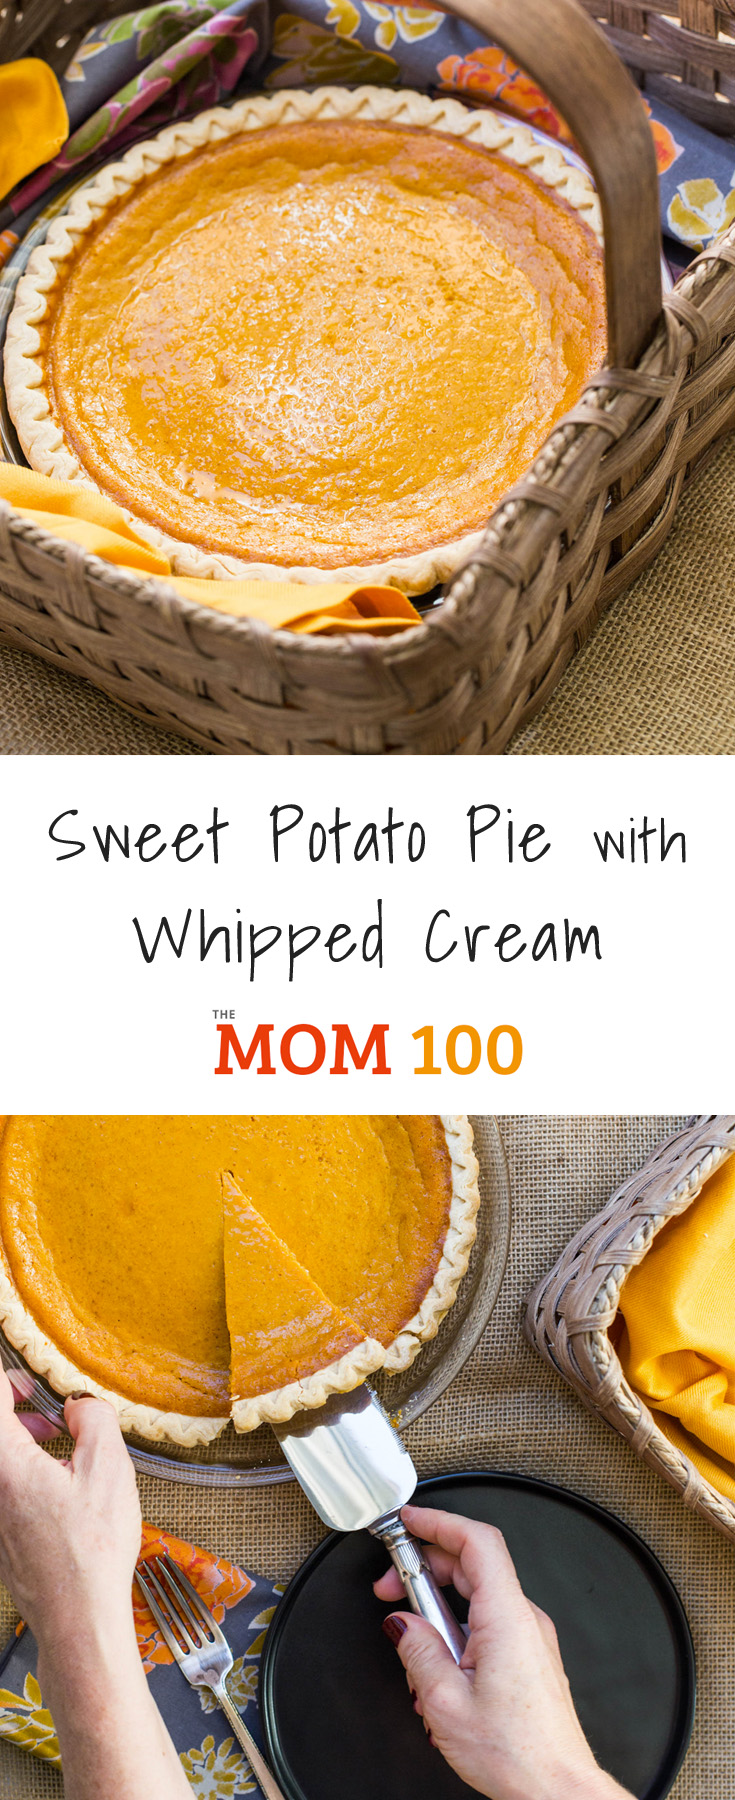 This Sweet Potato Pie with Whipped Cream is so comforting and sweet- a fun twist on the more traditional pumpkin pie. Homemade whipped cream makes the pie!